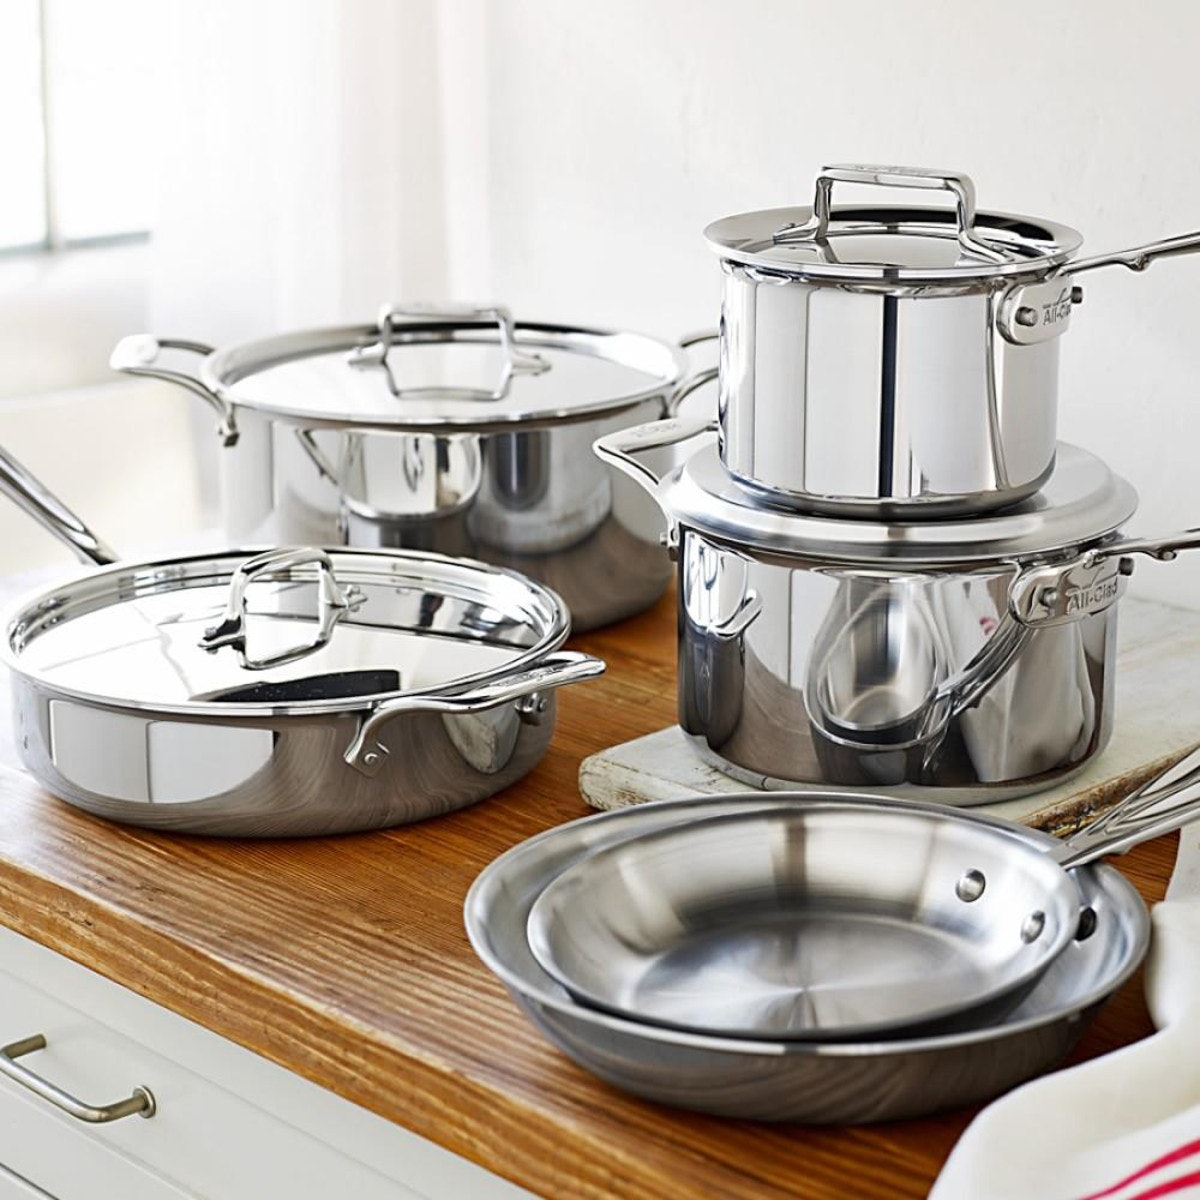 Williams Sonoma's Clearance Sale Has All-Clad, Le Creuset, & More Cookware Up To 75 Percent Off